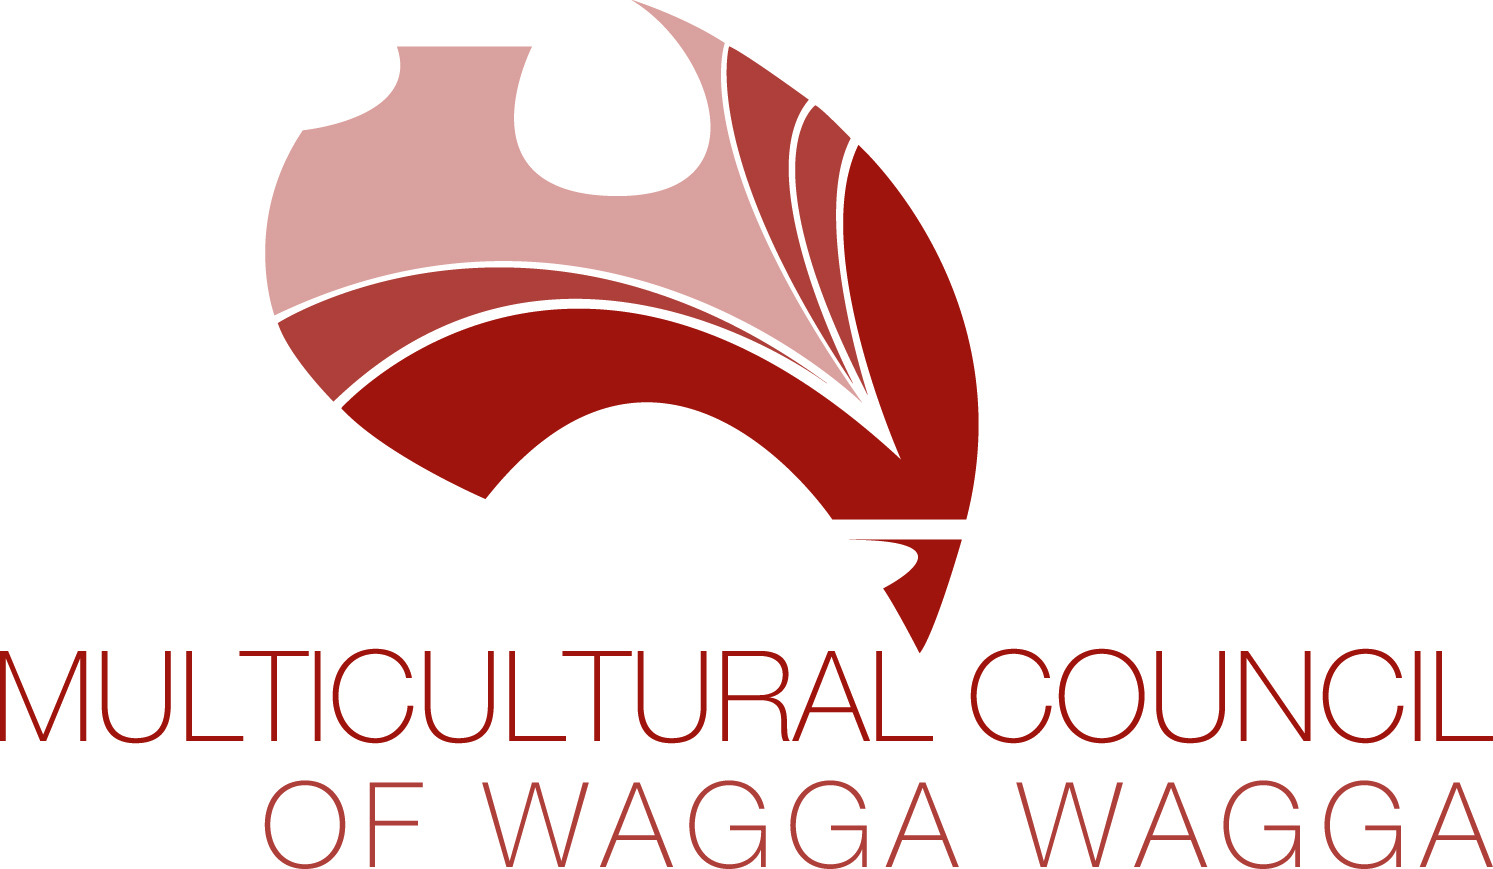 Multicultural Council of Wagga Wagga